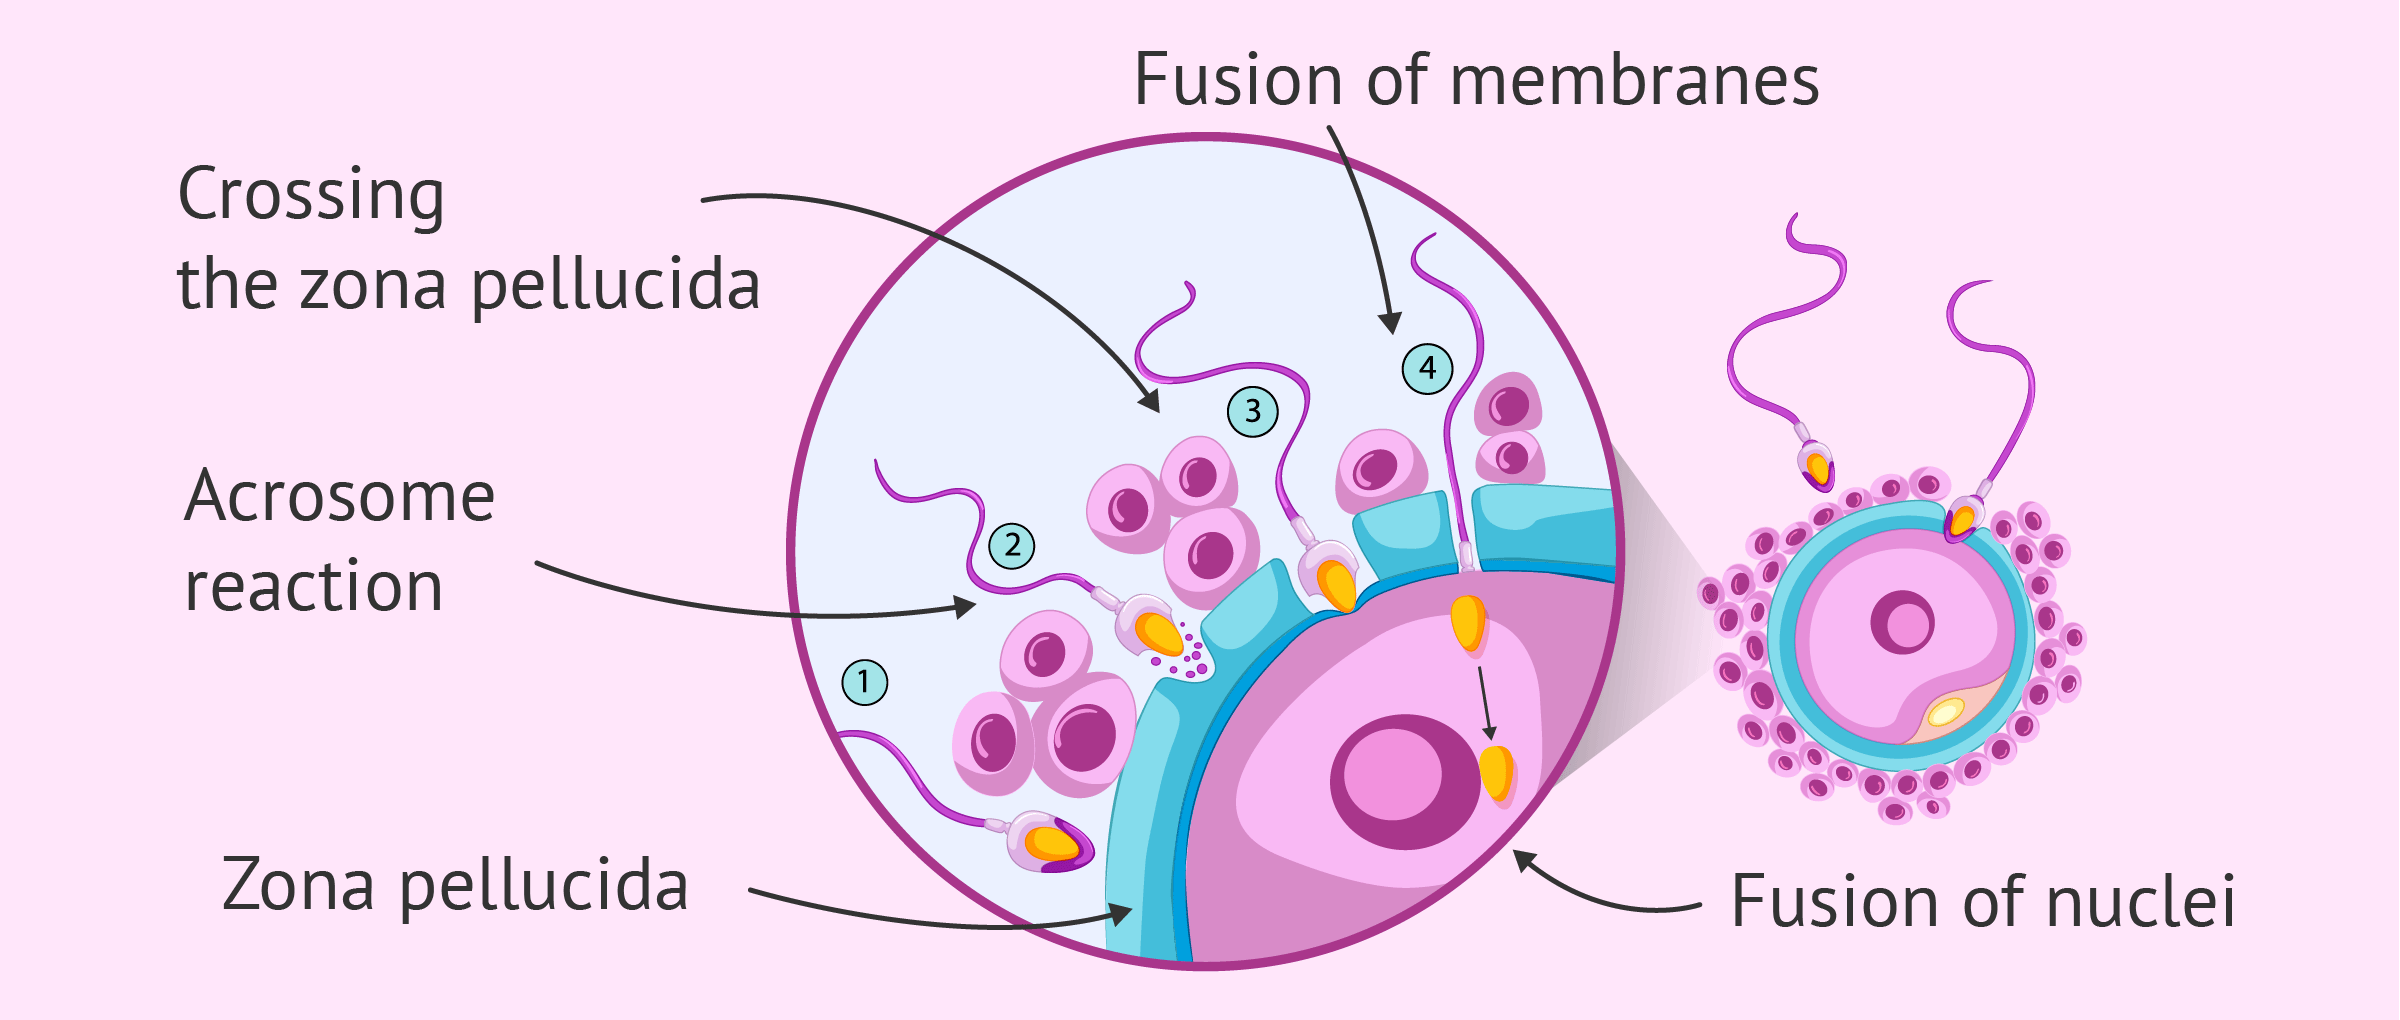 What Are the Steps of Fertilization in Humans?